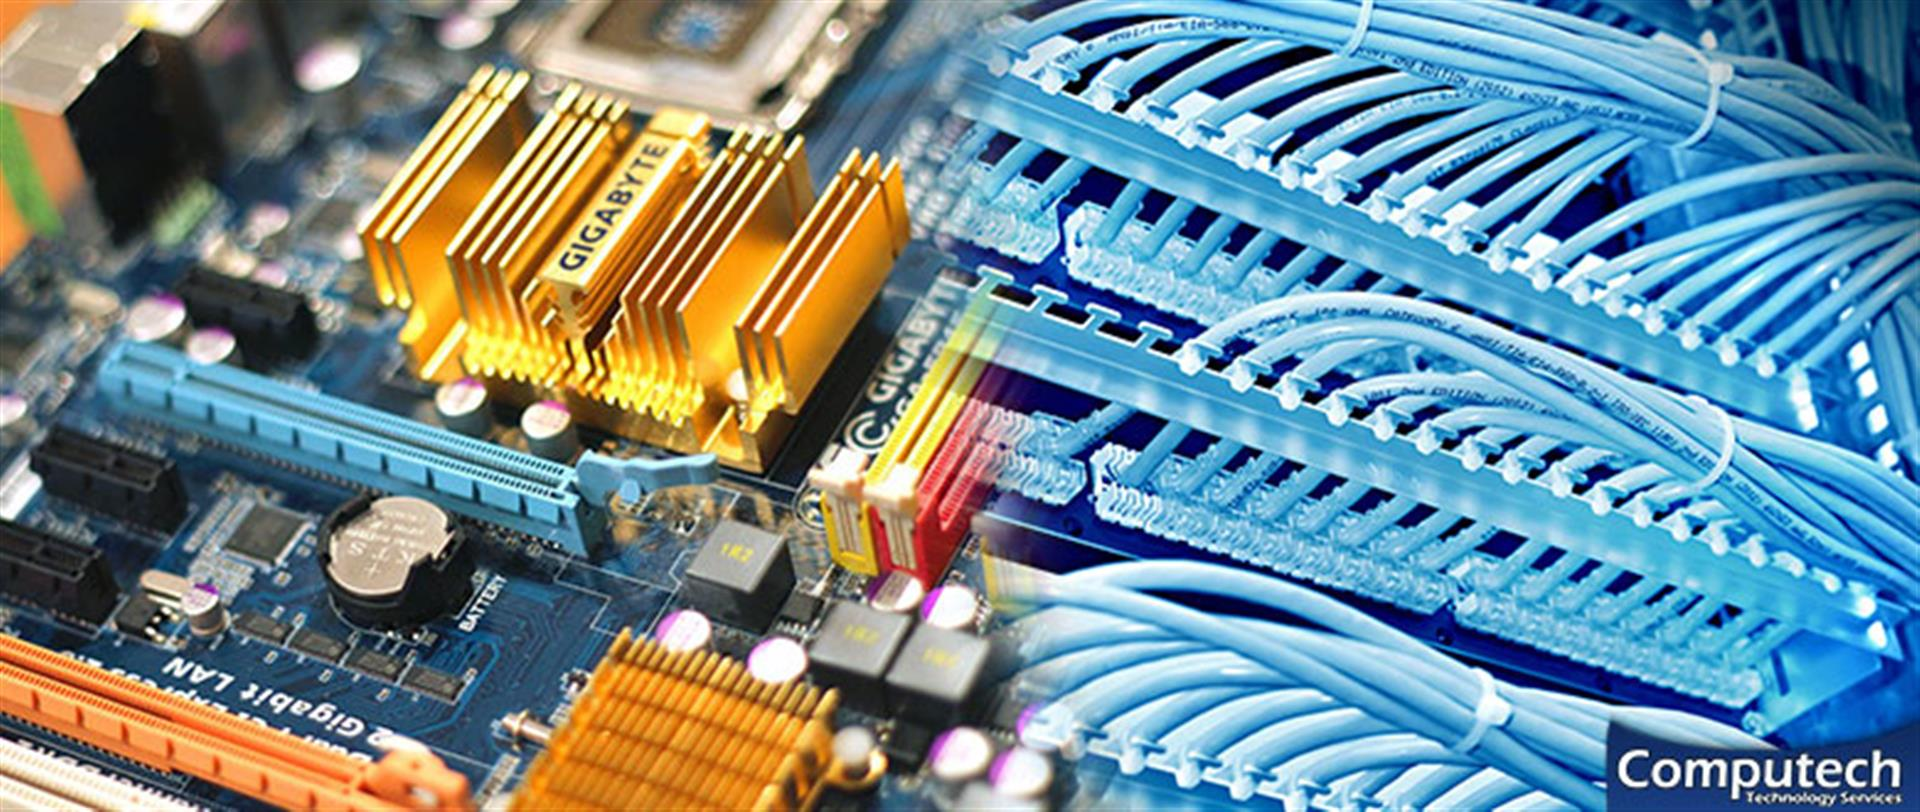 Camilla Georgia On-Site Computer PC & Printer Repairs, Network, Voice & Data Cabling Services